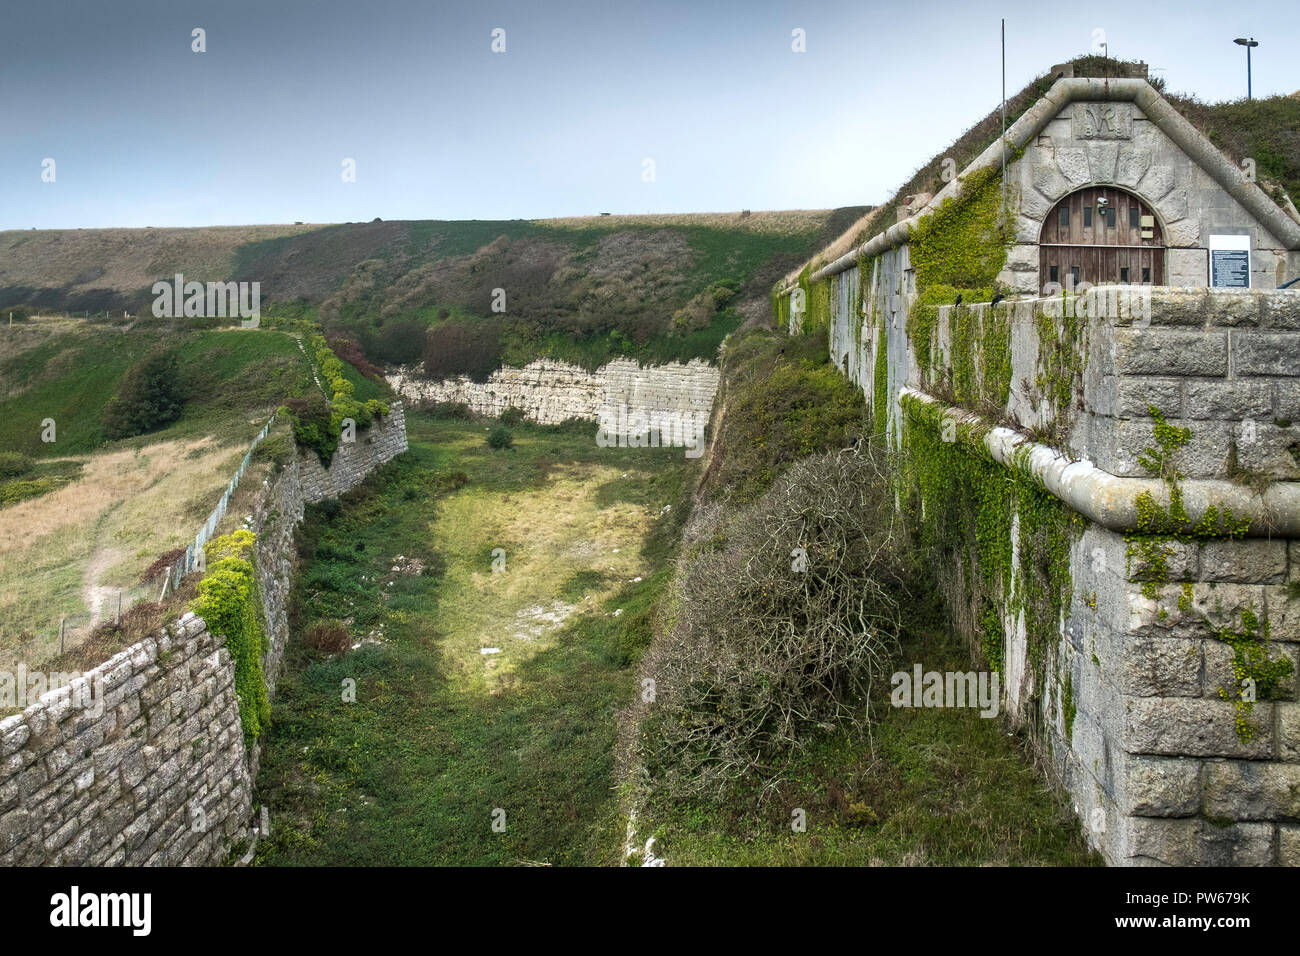 The South West Ditch Moat near the South Entrance to HM Prison Verne on the Isle of Portland in Dorset, UK. - Stock Image